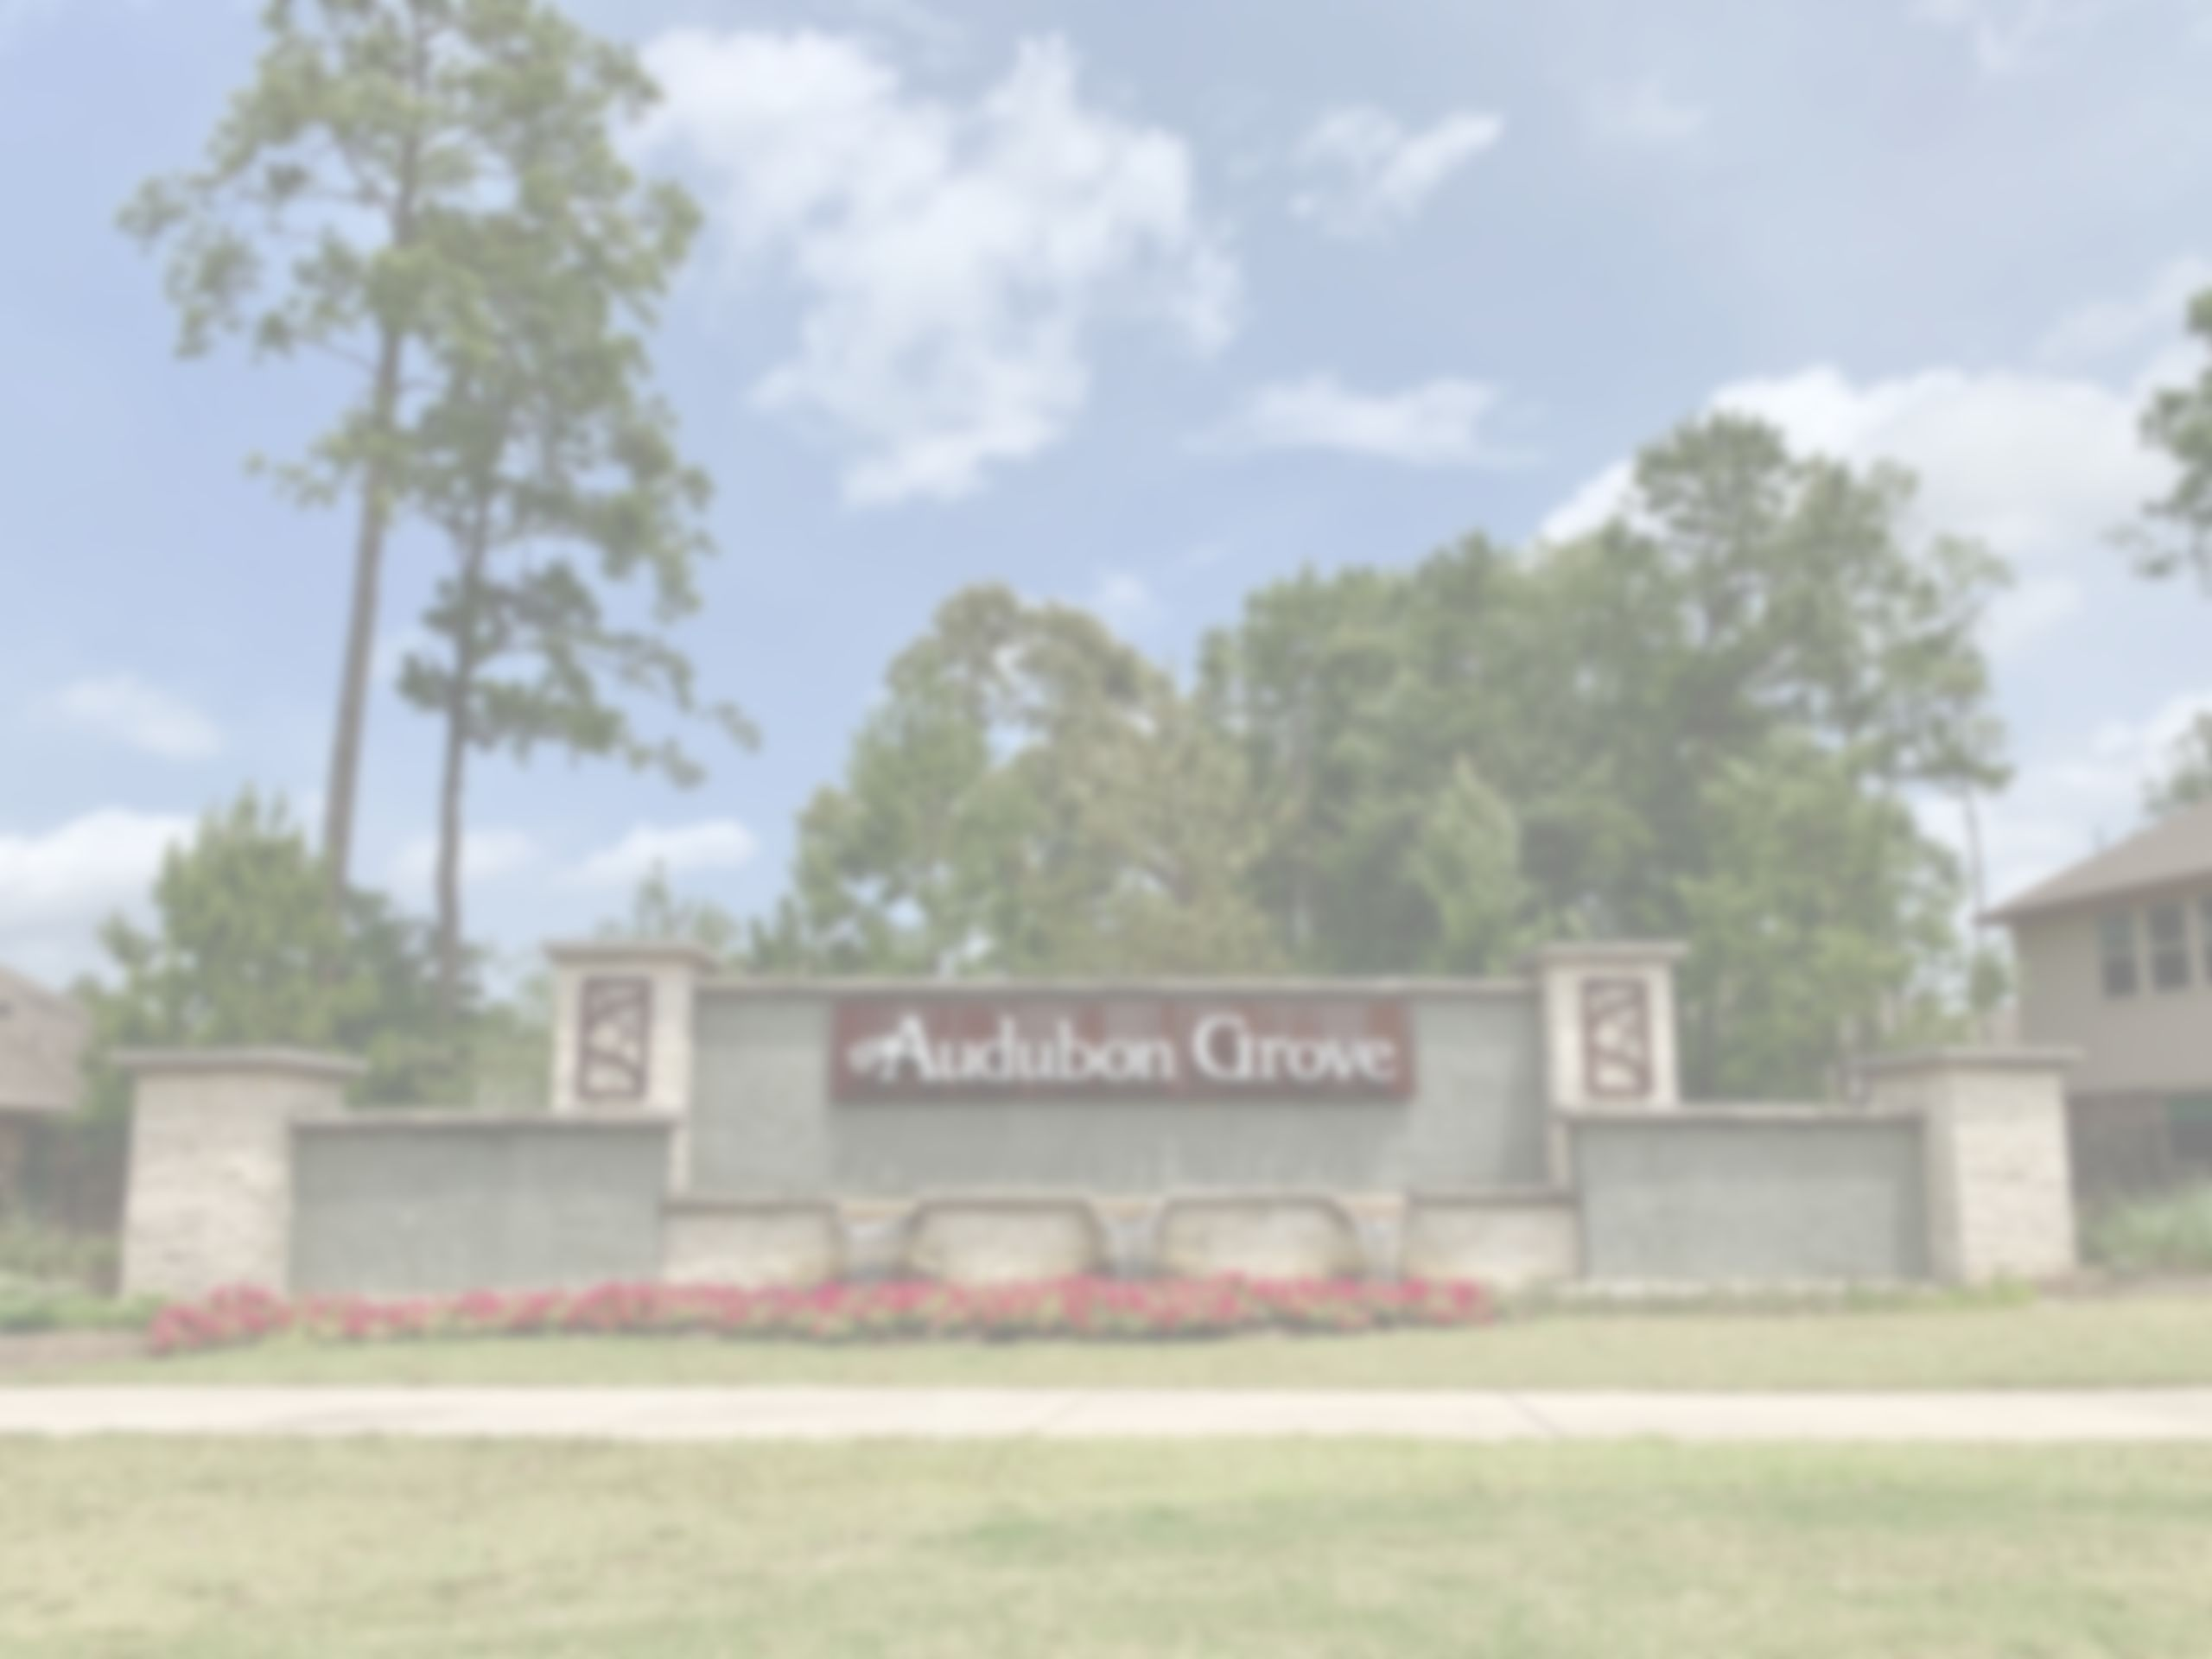 Audubon Grove at Springwoods Village